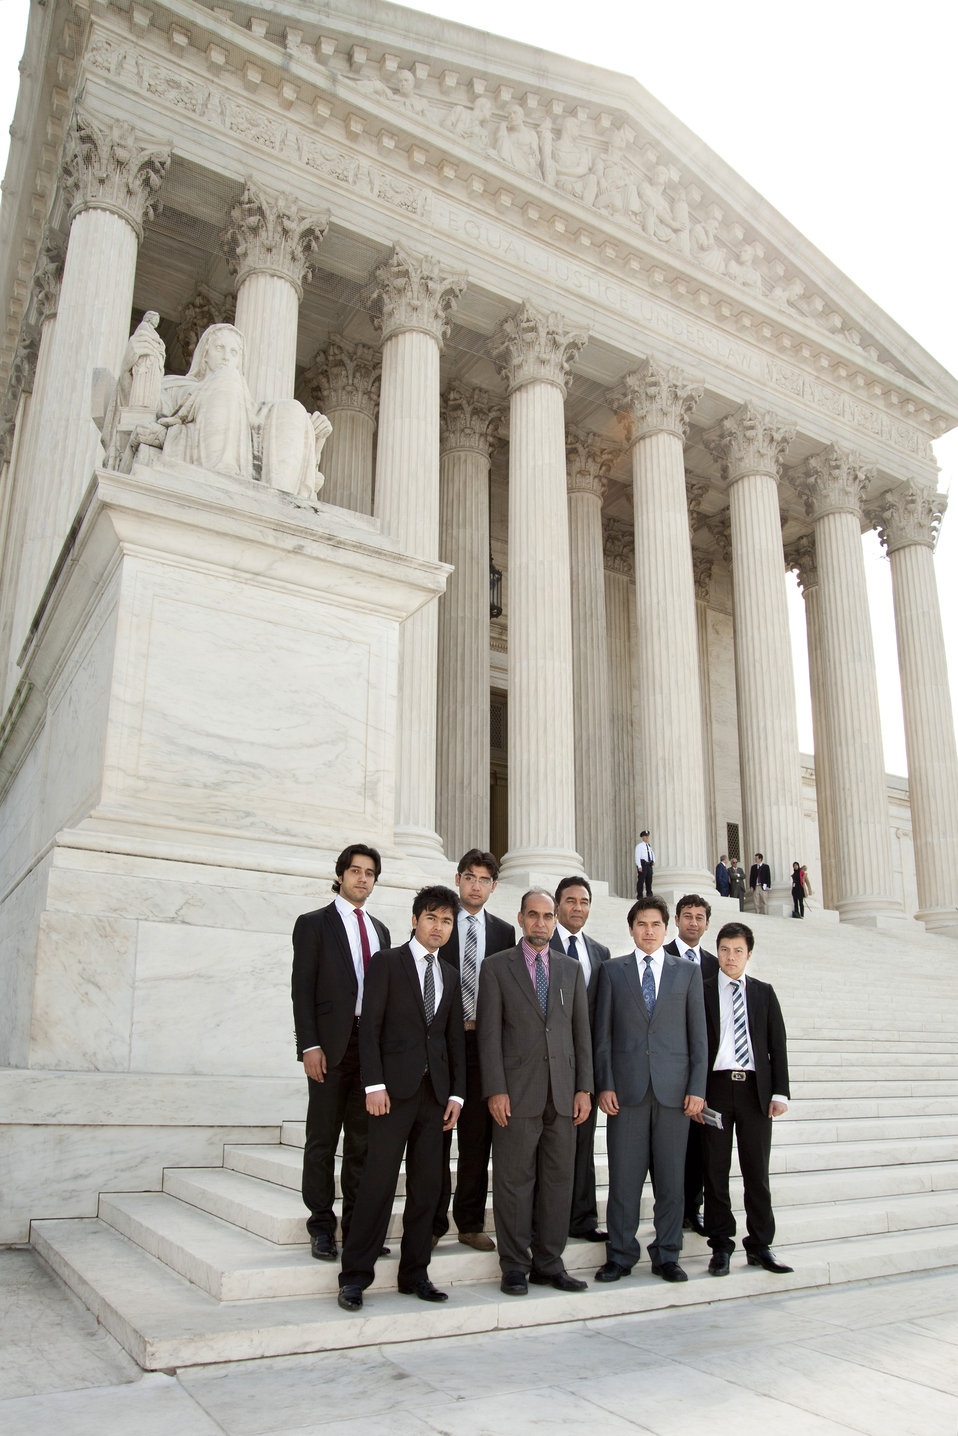 2012 Jessup Moot Court Competitors from Afghanistan Visit the Supreme Court